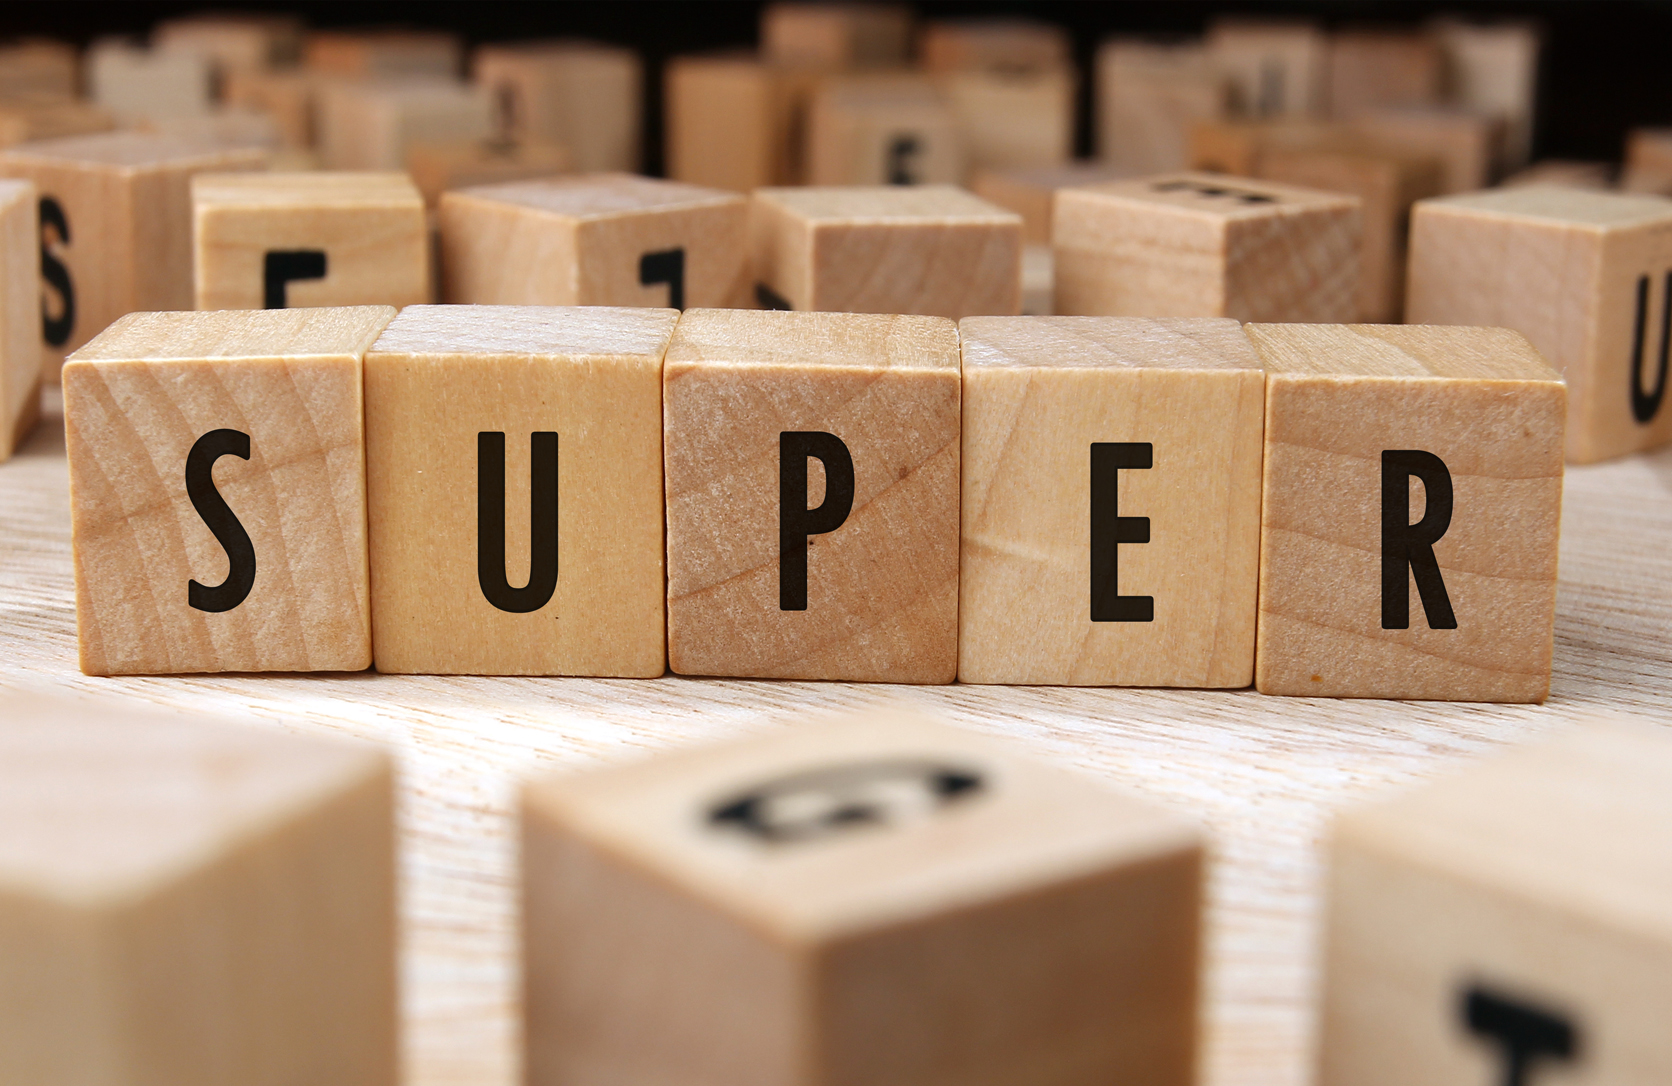 Super cap puts SMSF accounting practices under the spotlight | MWM Advisory